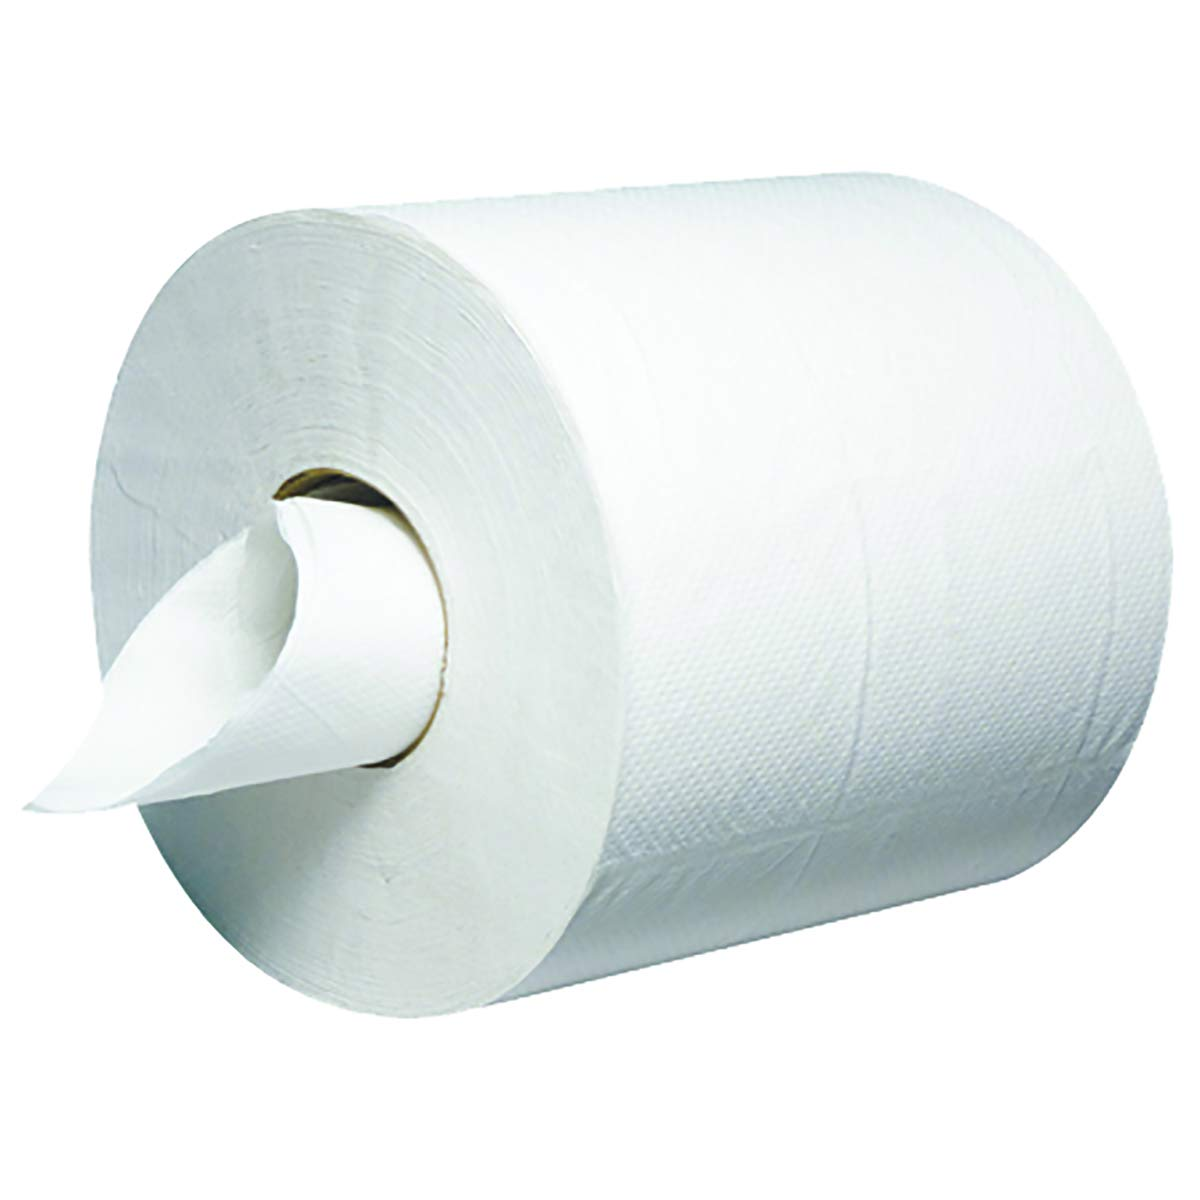 White 8 Width 10 Length Empress CP 660010 Center Pull Towel 600 Sheets 2-Ply Pack of 6